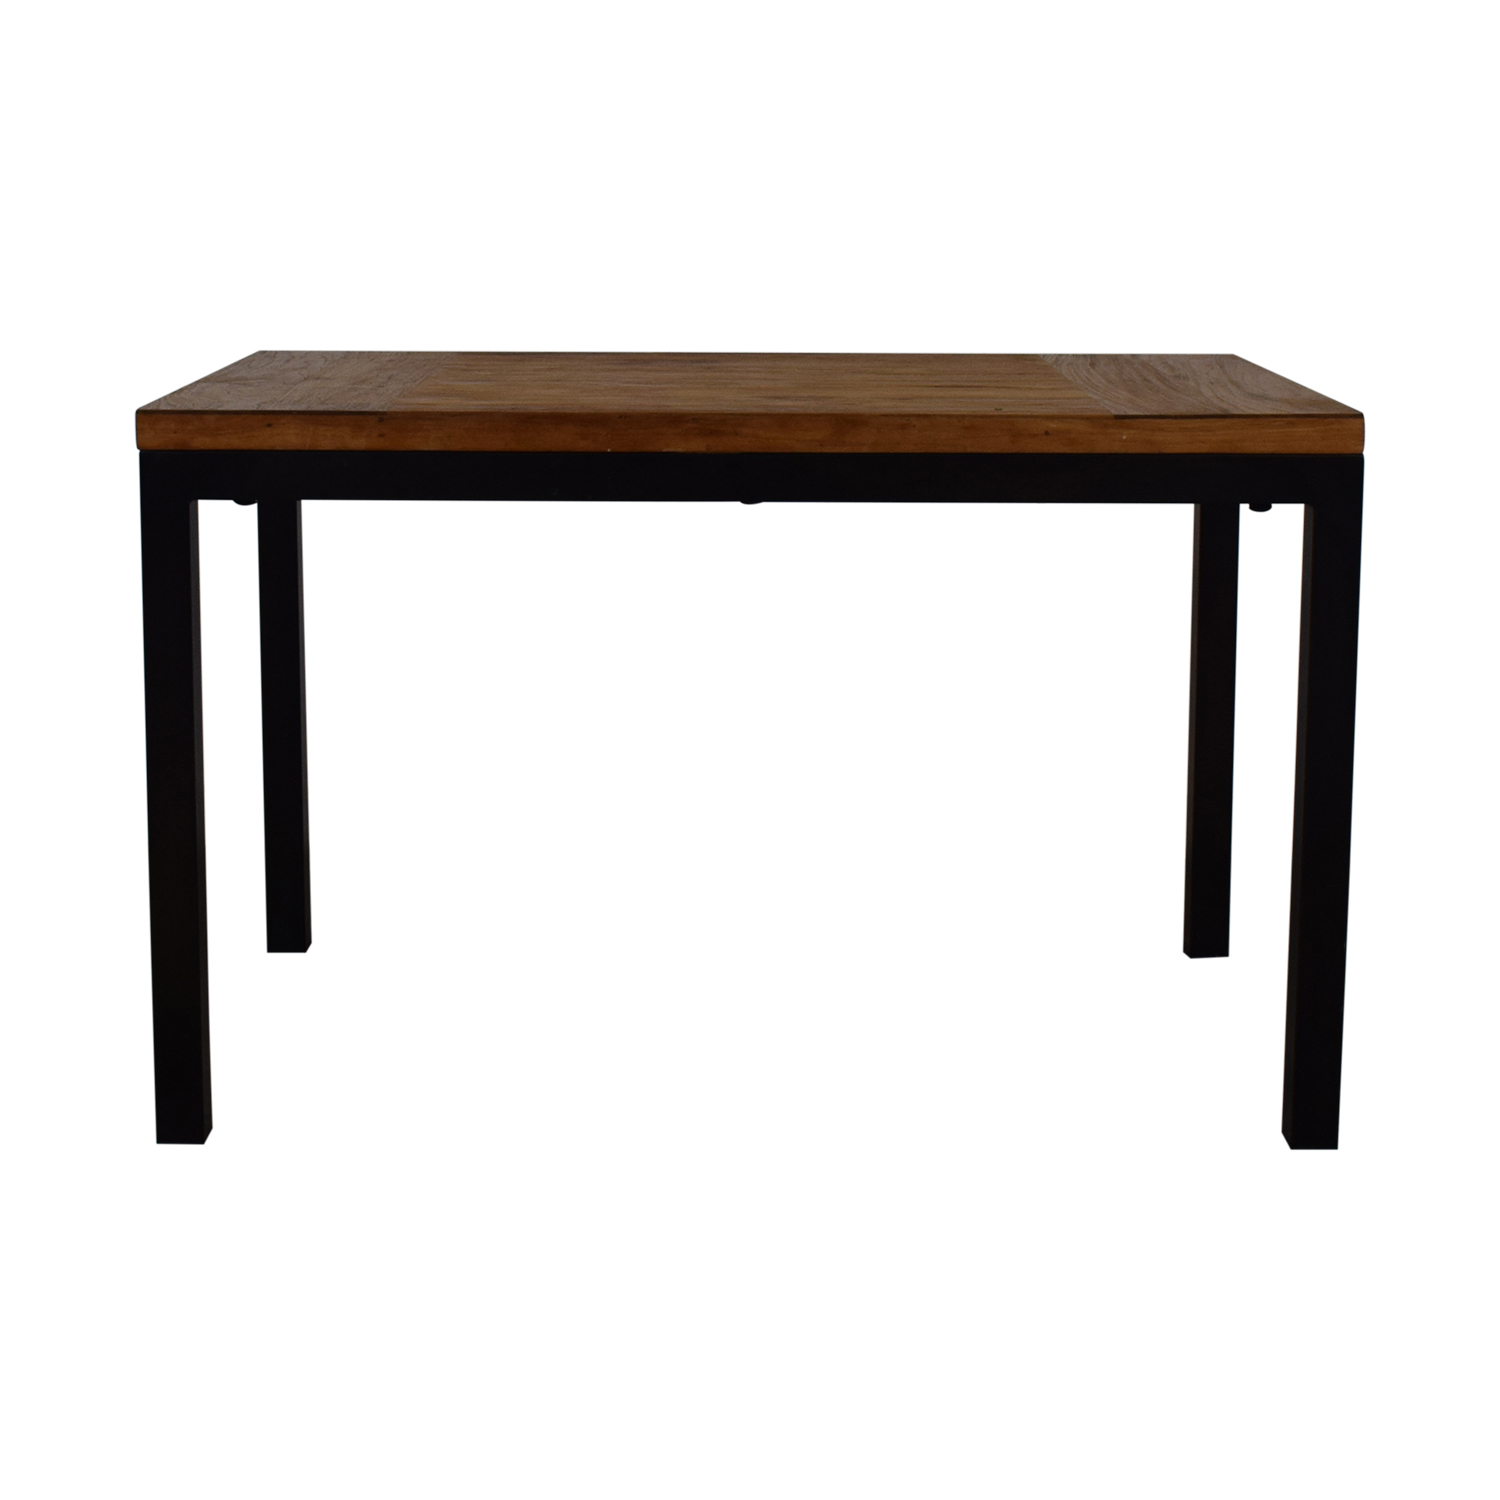 Crate & Barrel Parsons Kitchen Table With Metal Frame / Dinner Tables